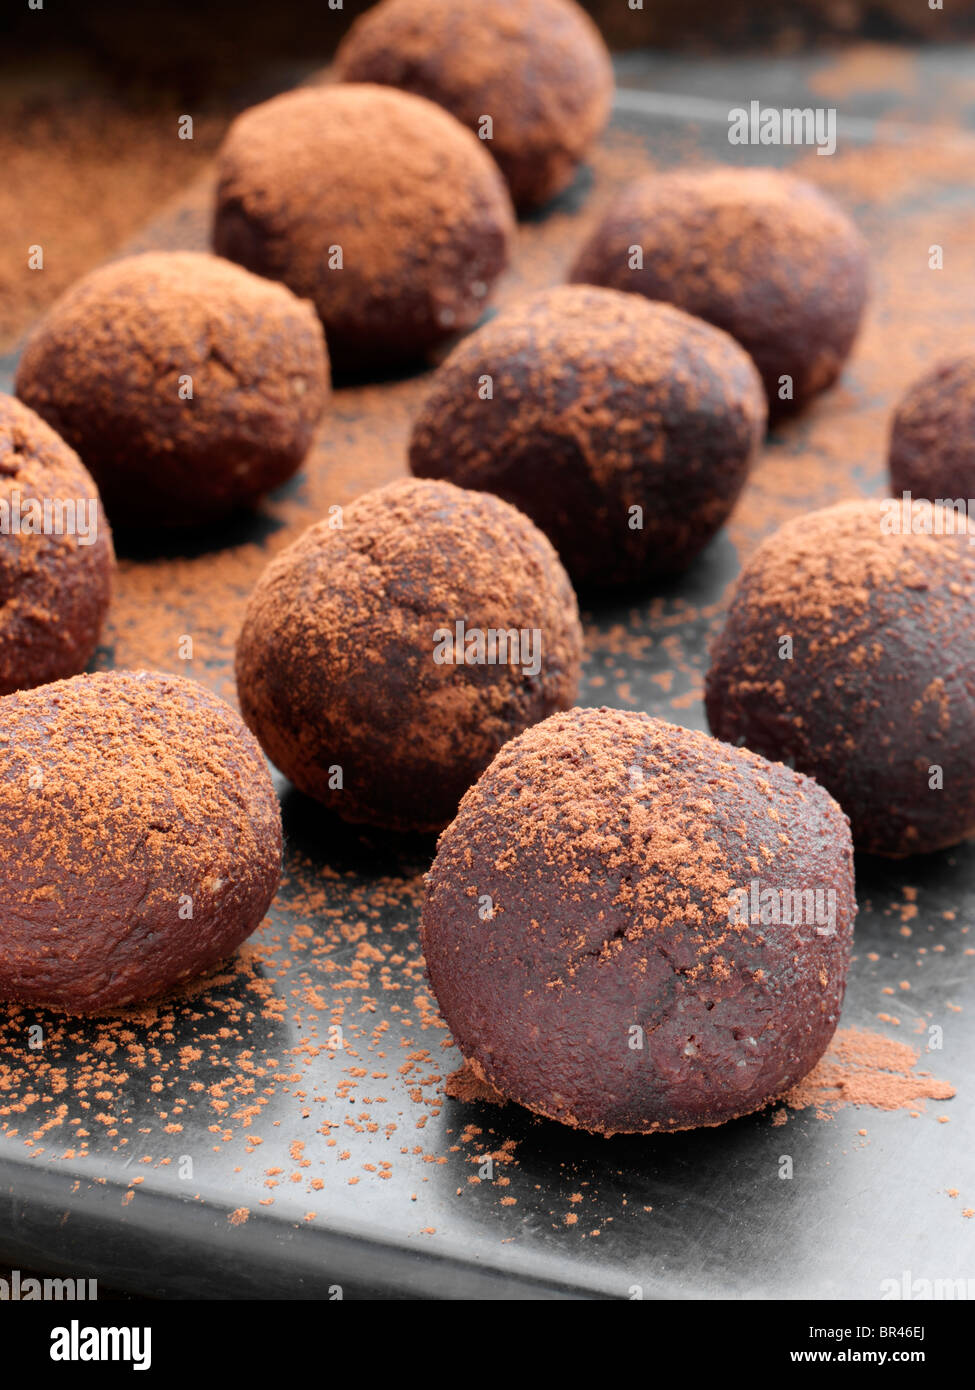 Chocolate truffles dusted with cocoa powder - Stock Image